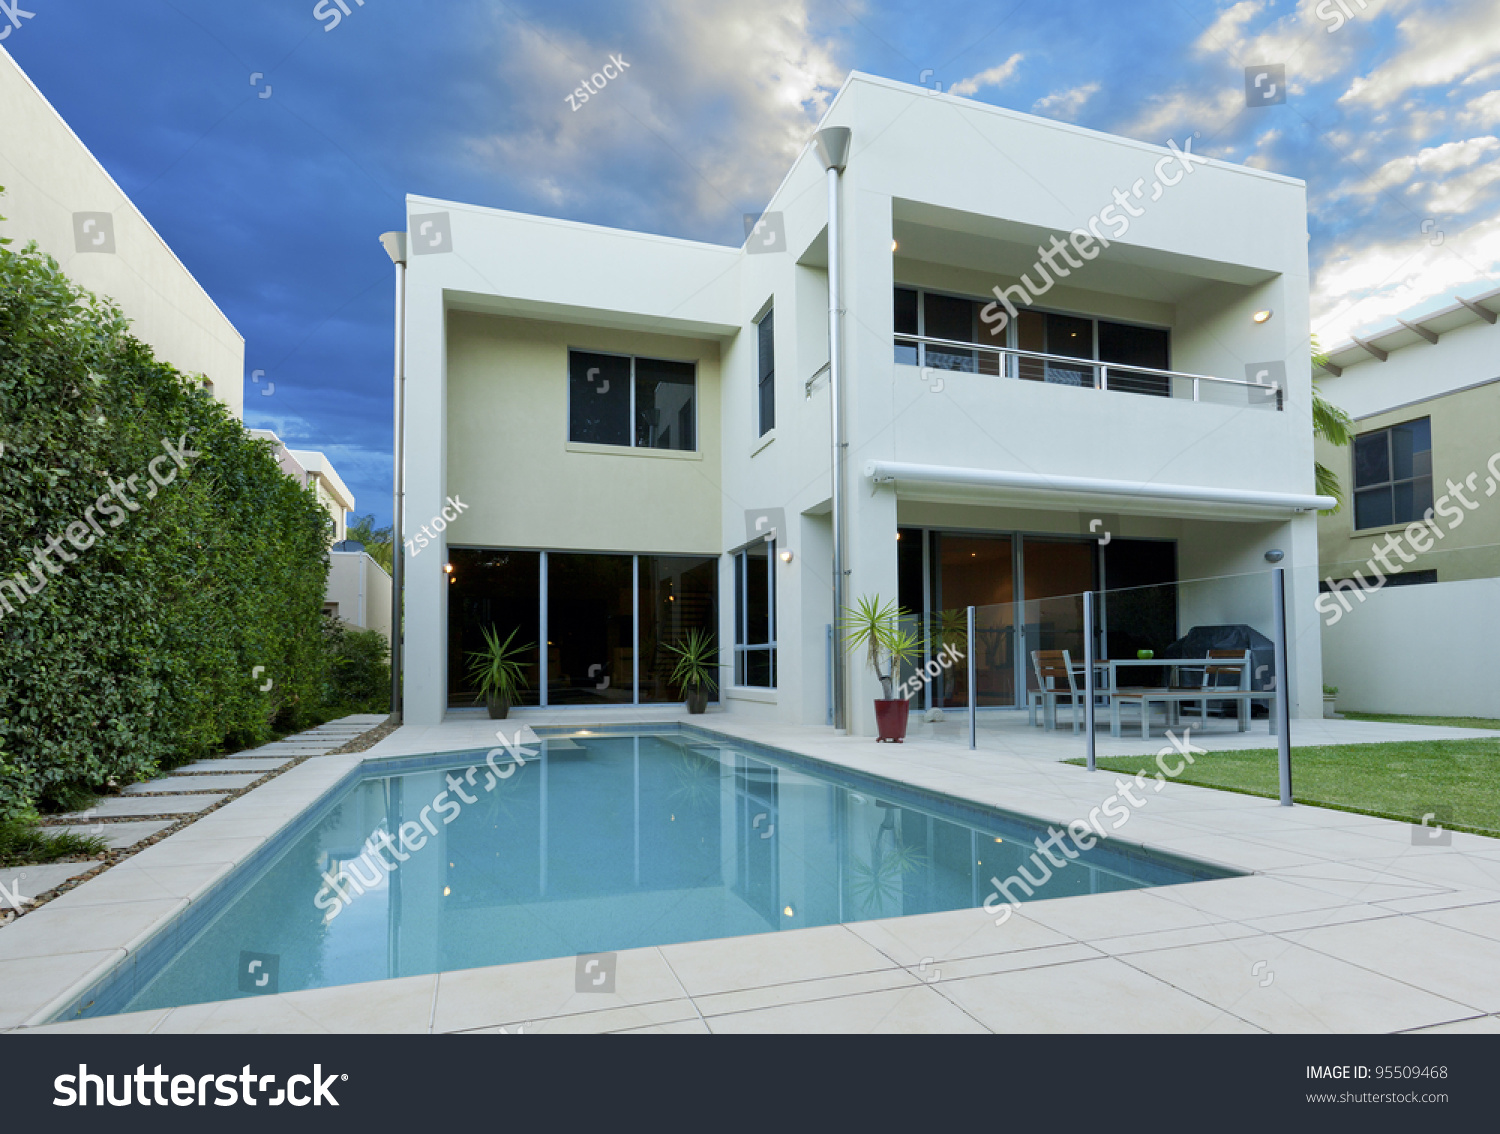 luxurious modern house swimming pool backyard stock photo 95509468 shutterstock. Black Bedroom Furniture Sets. Home Design Ideas